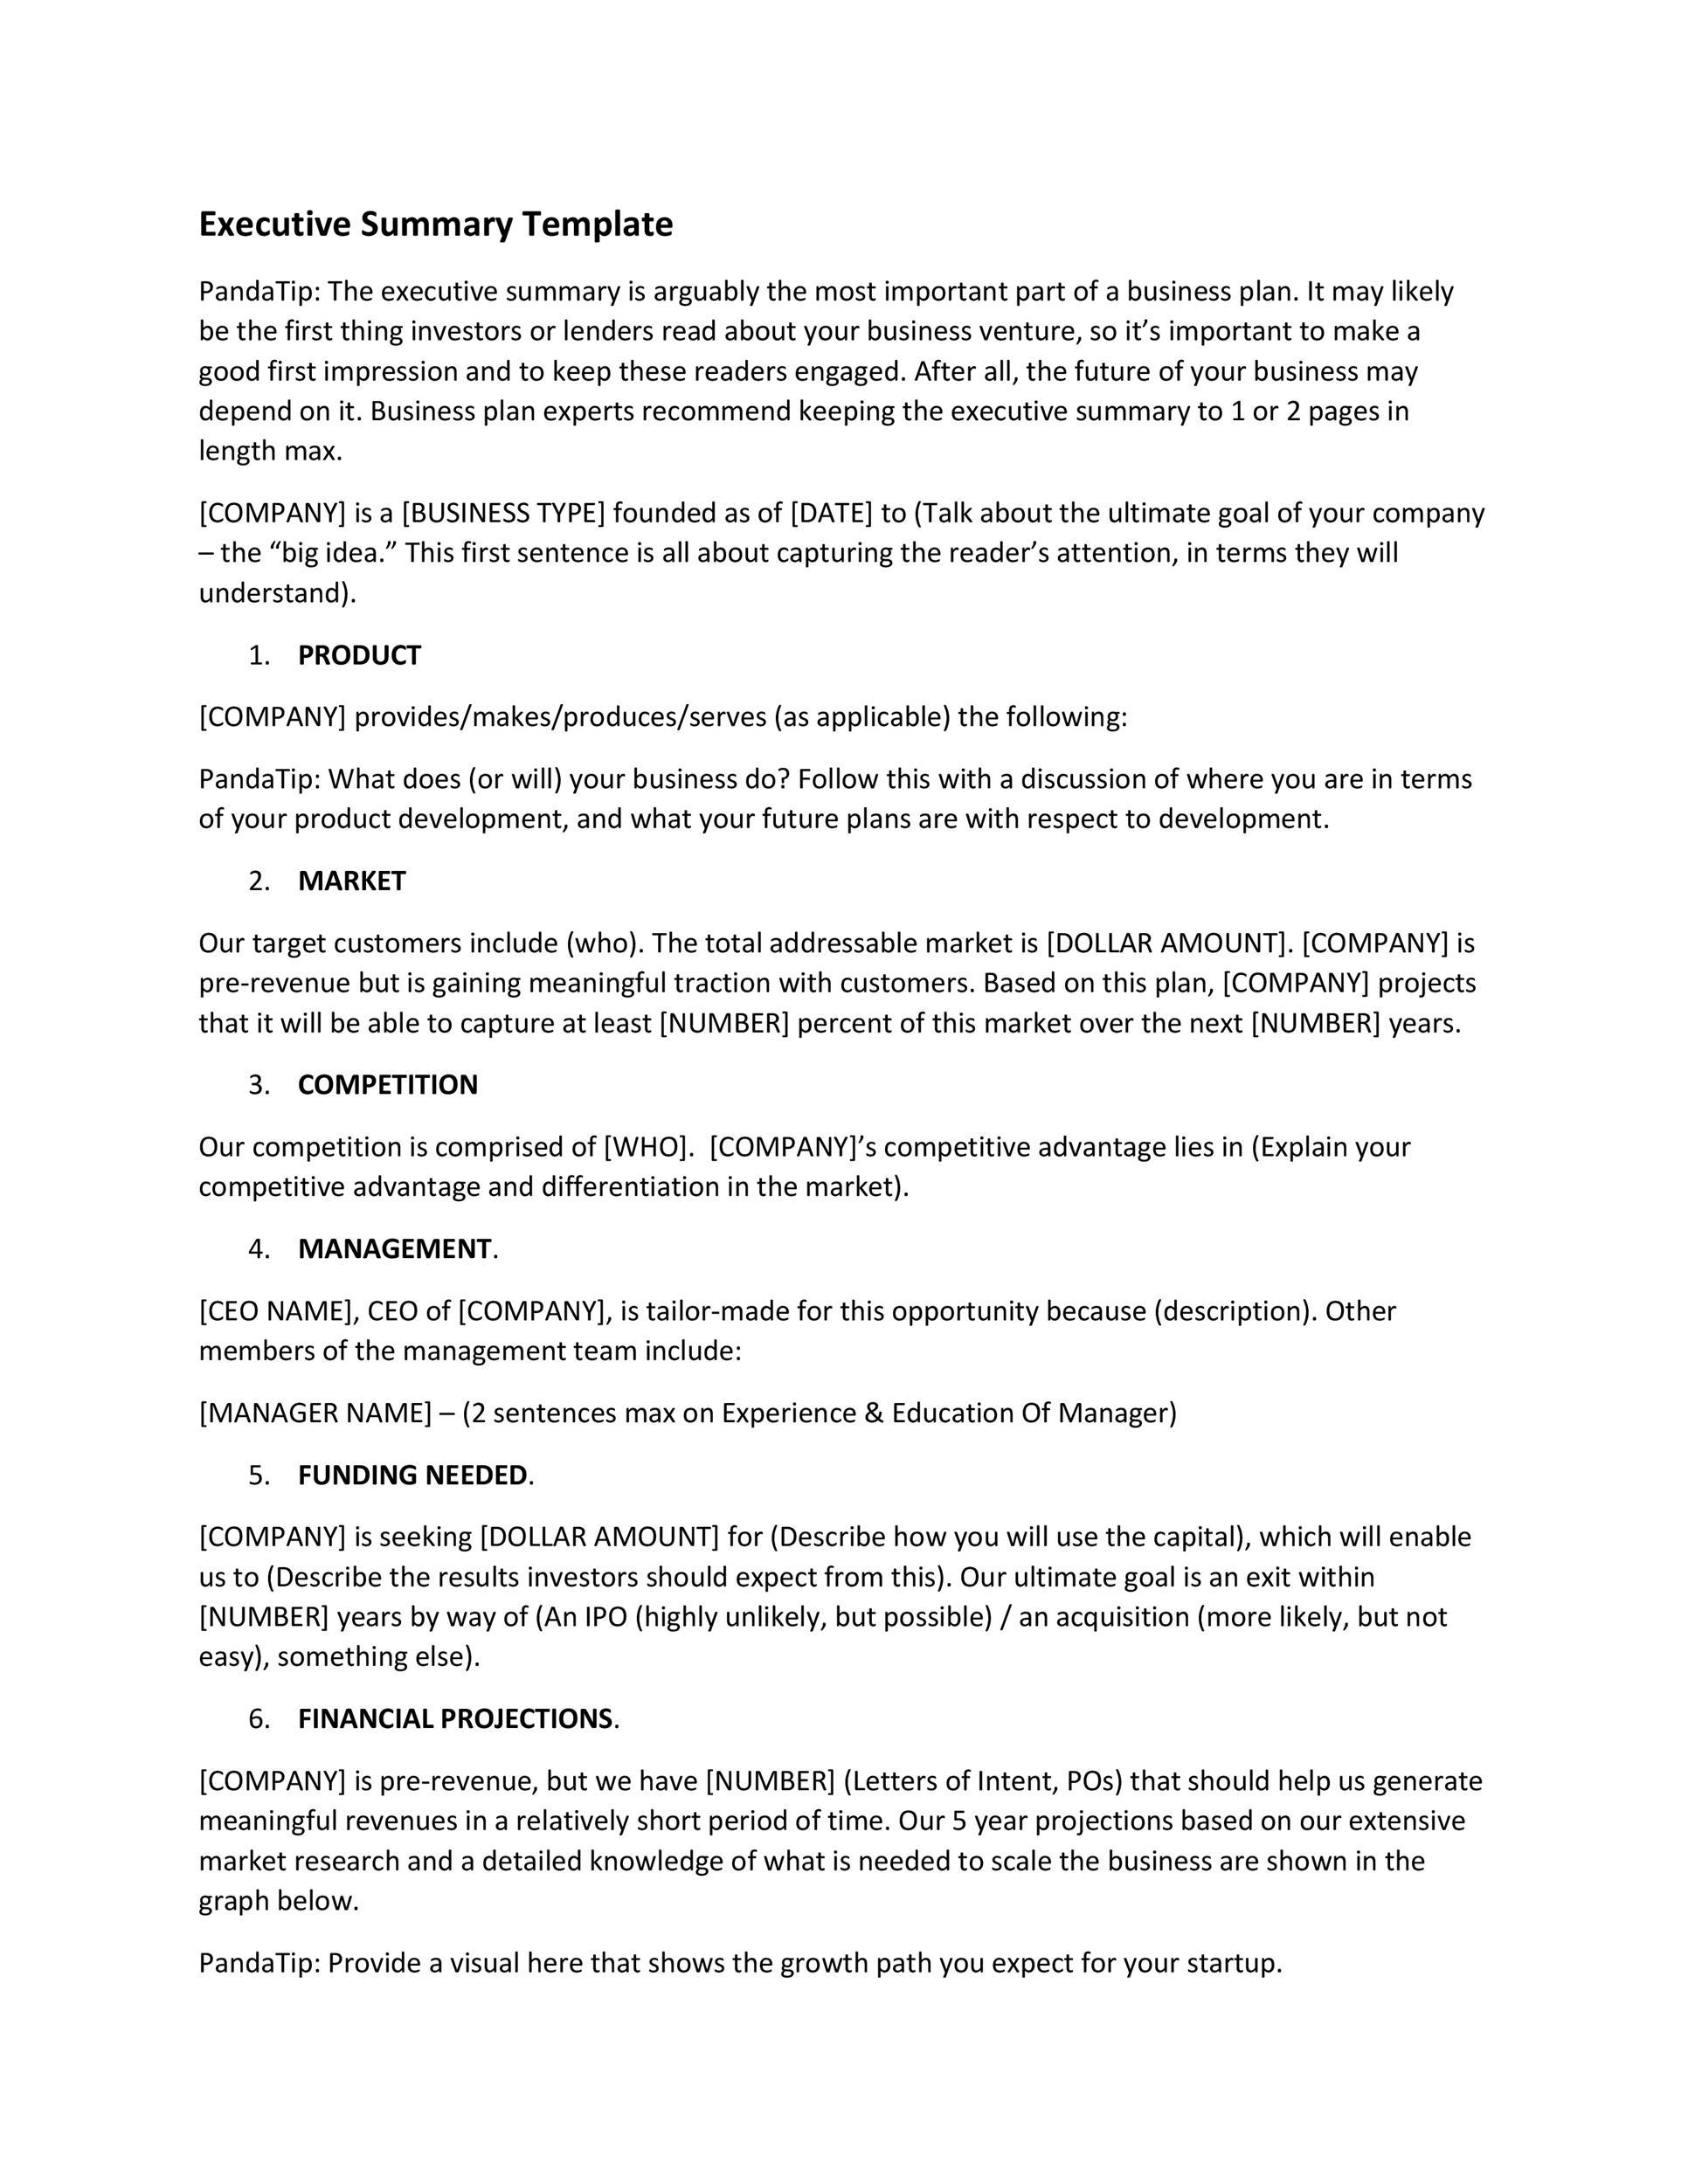 Executive Summary Template 04